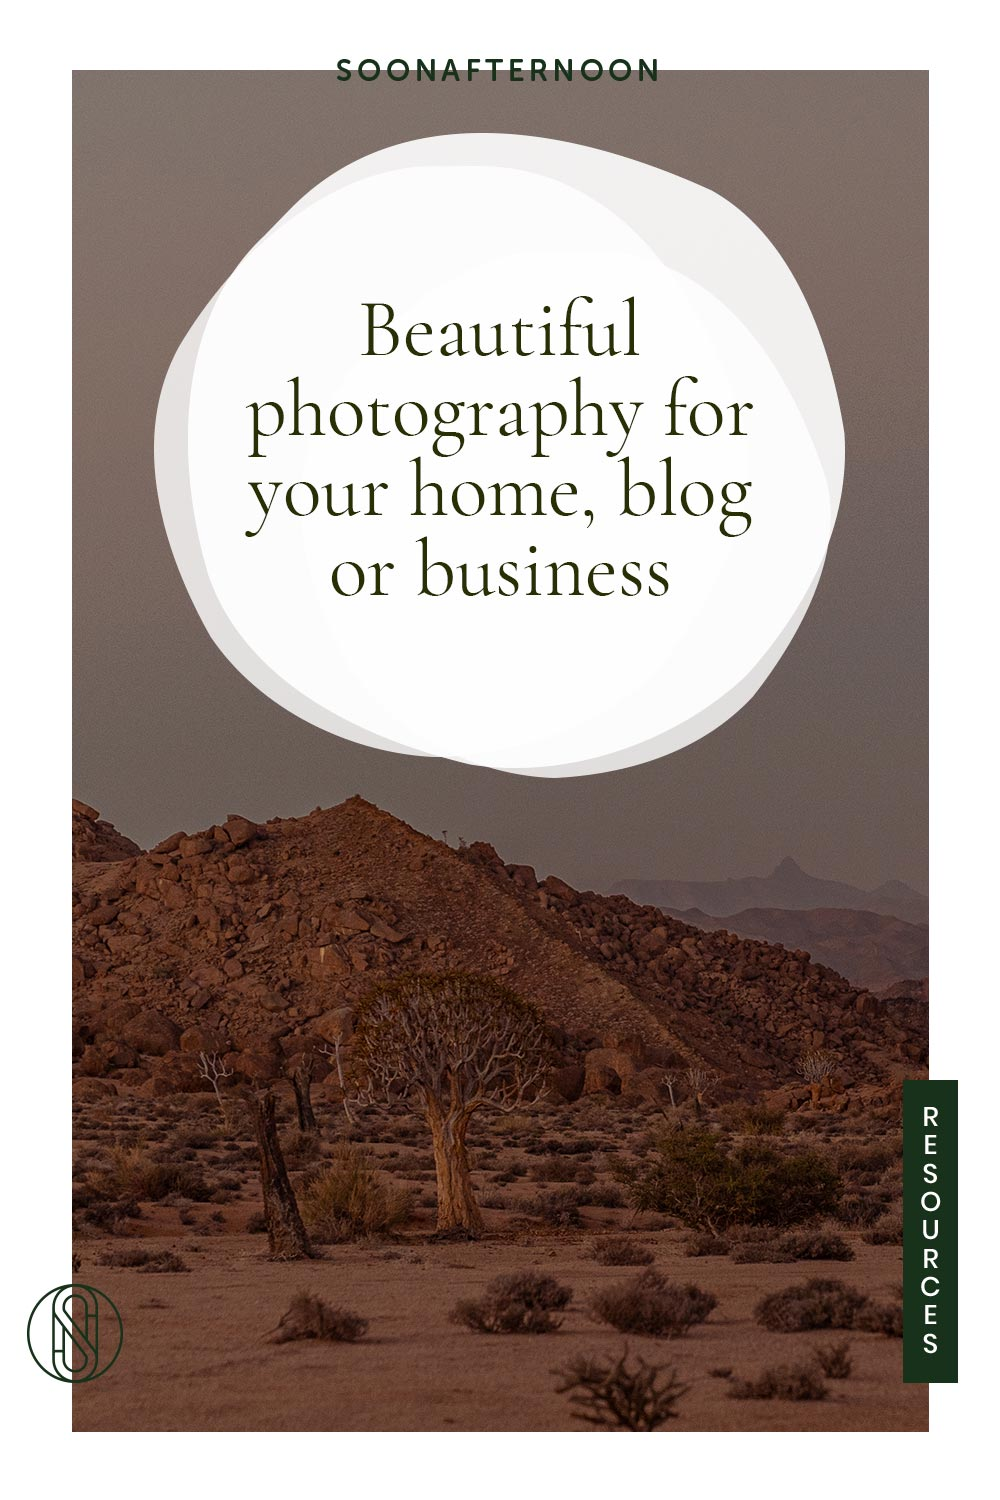 Beautiful photography for your home blog or business